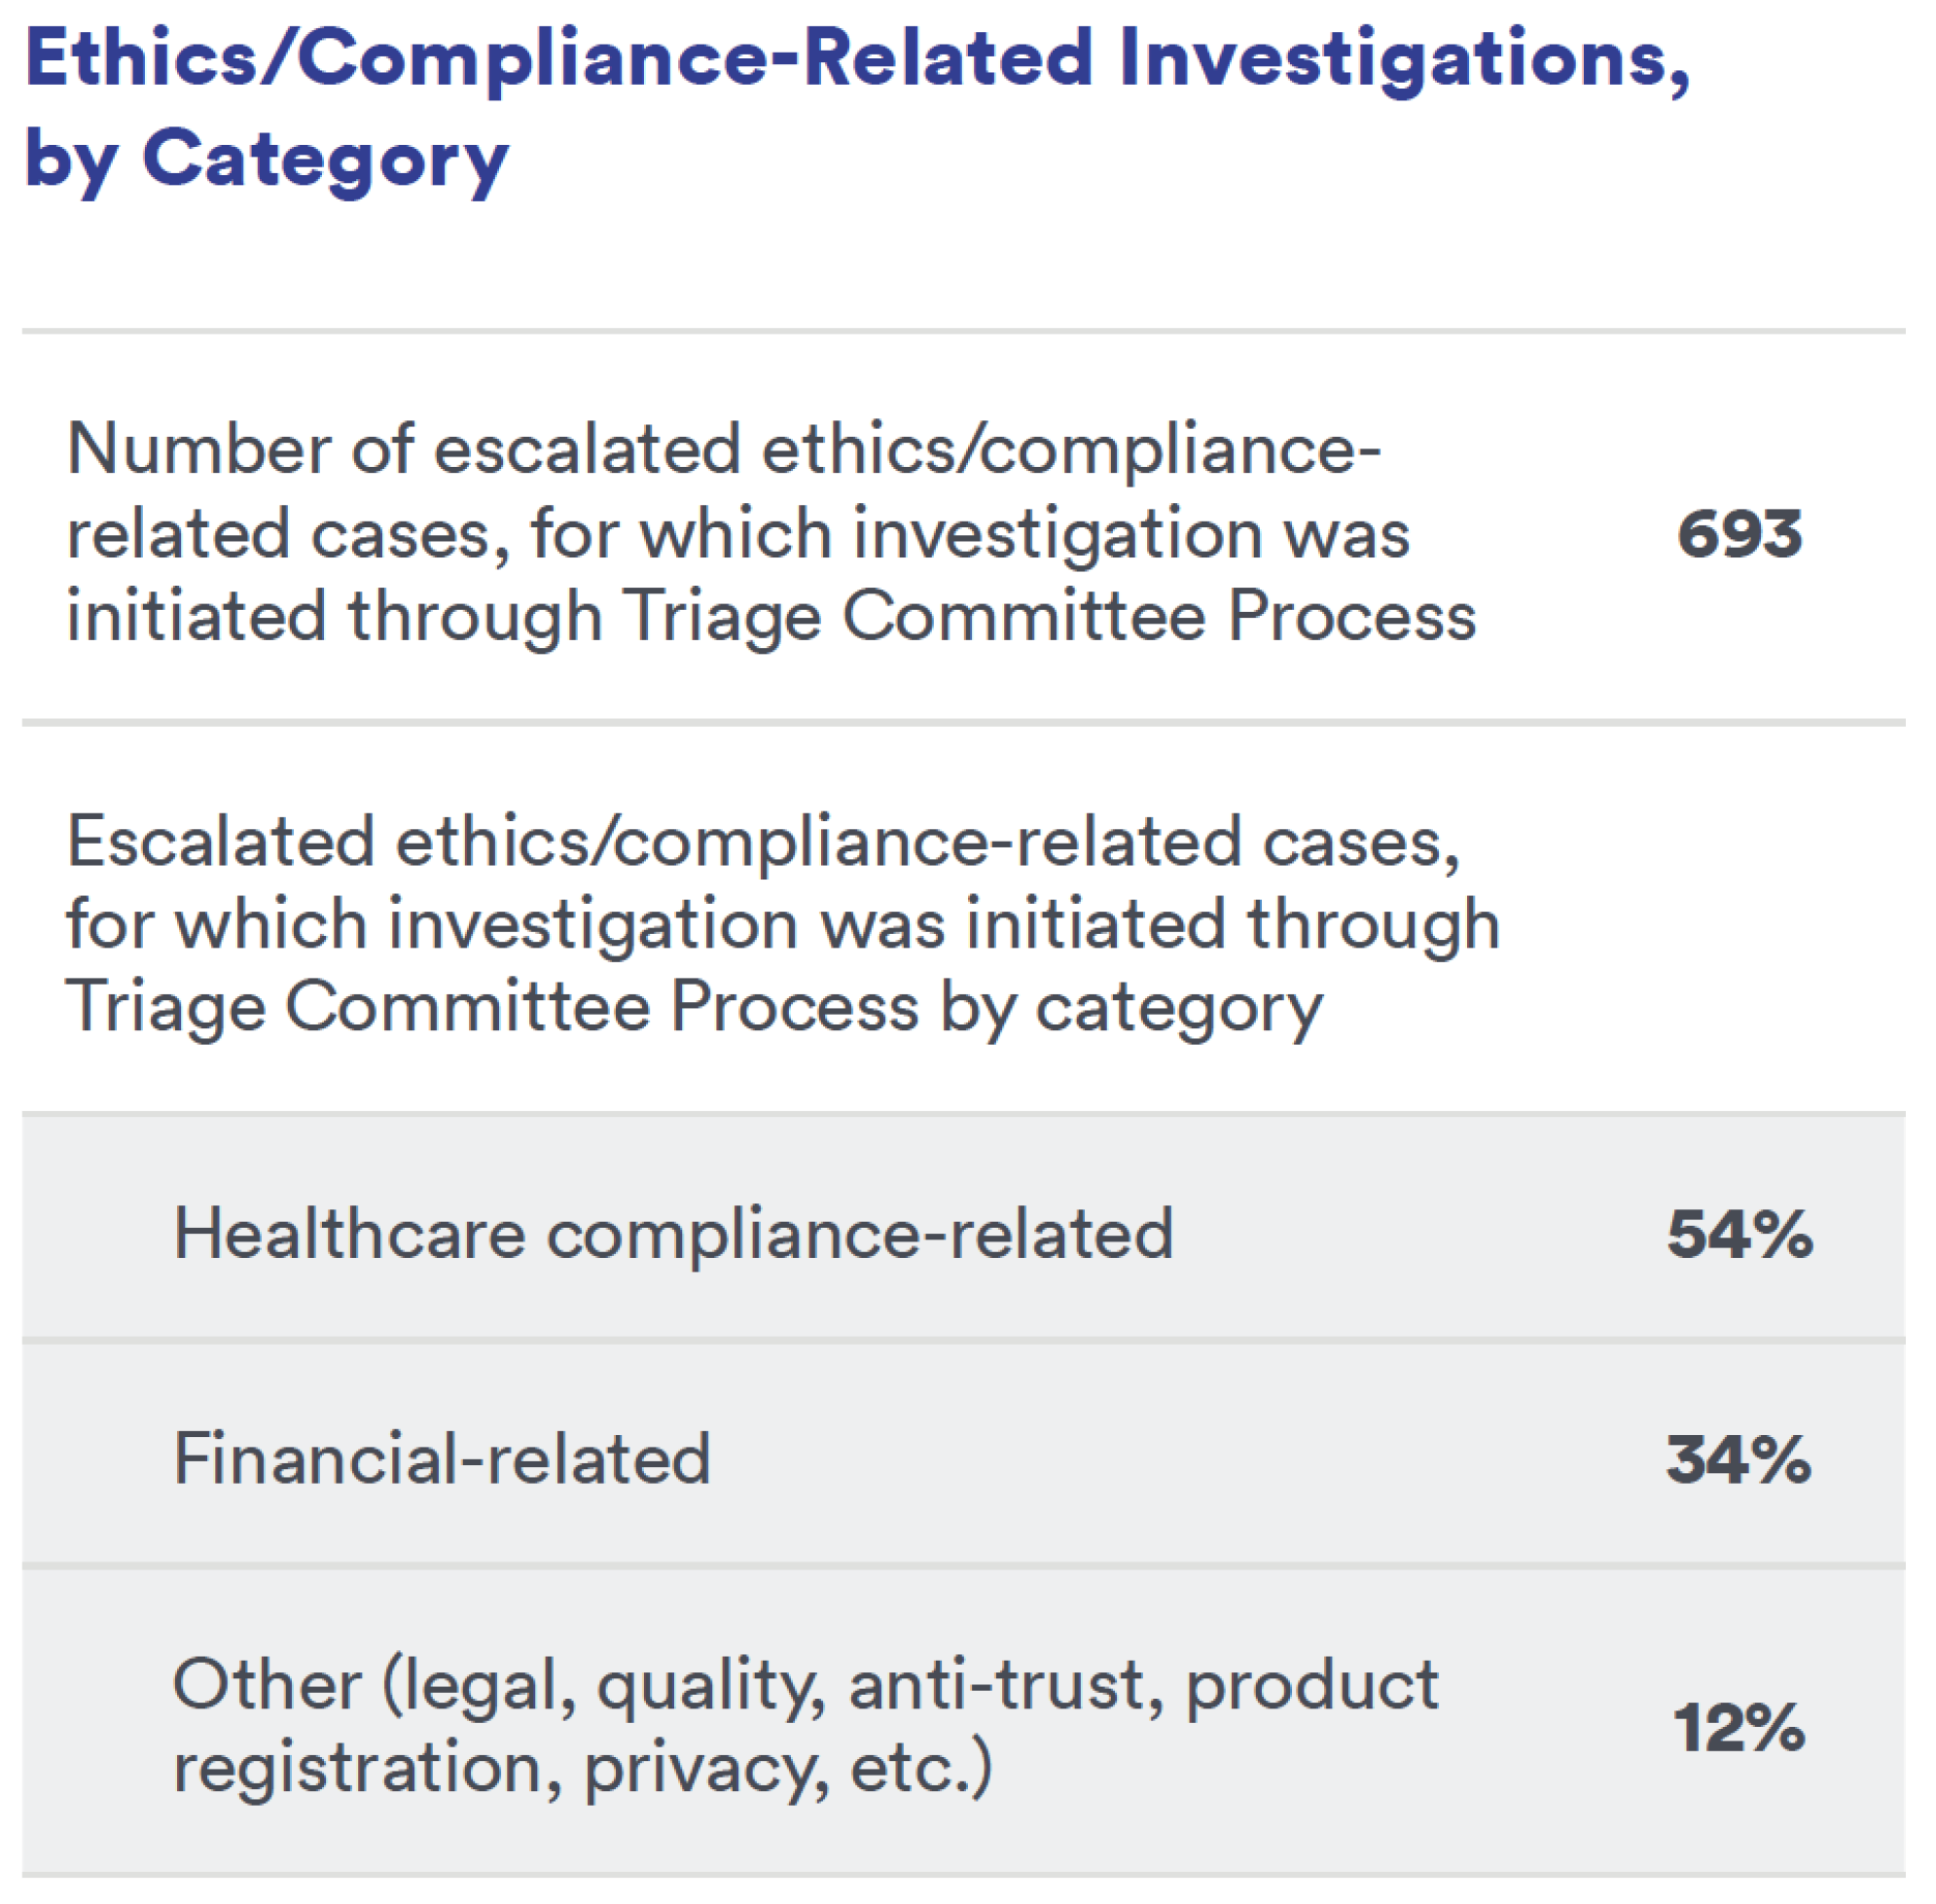 Ethics/Compliance-Related Investigations, by Category